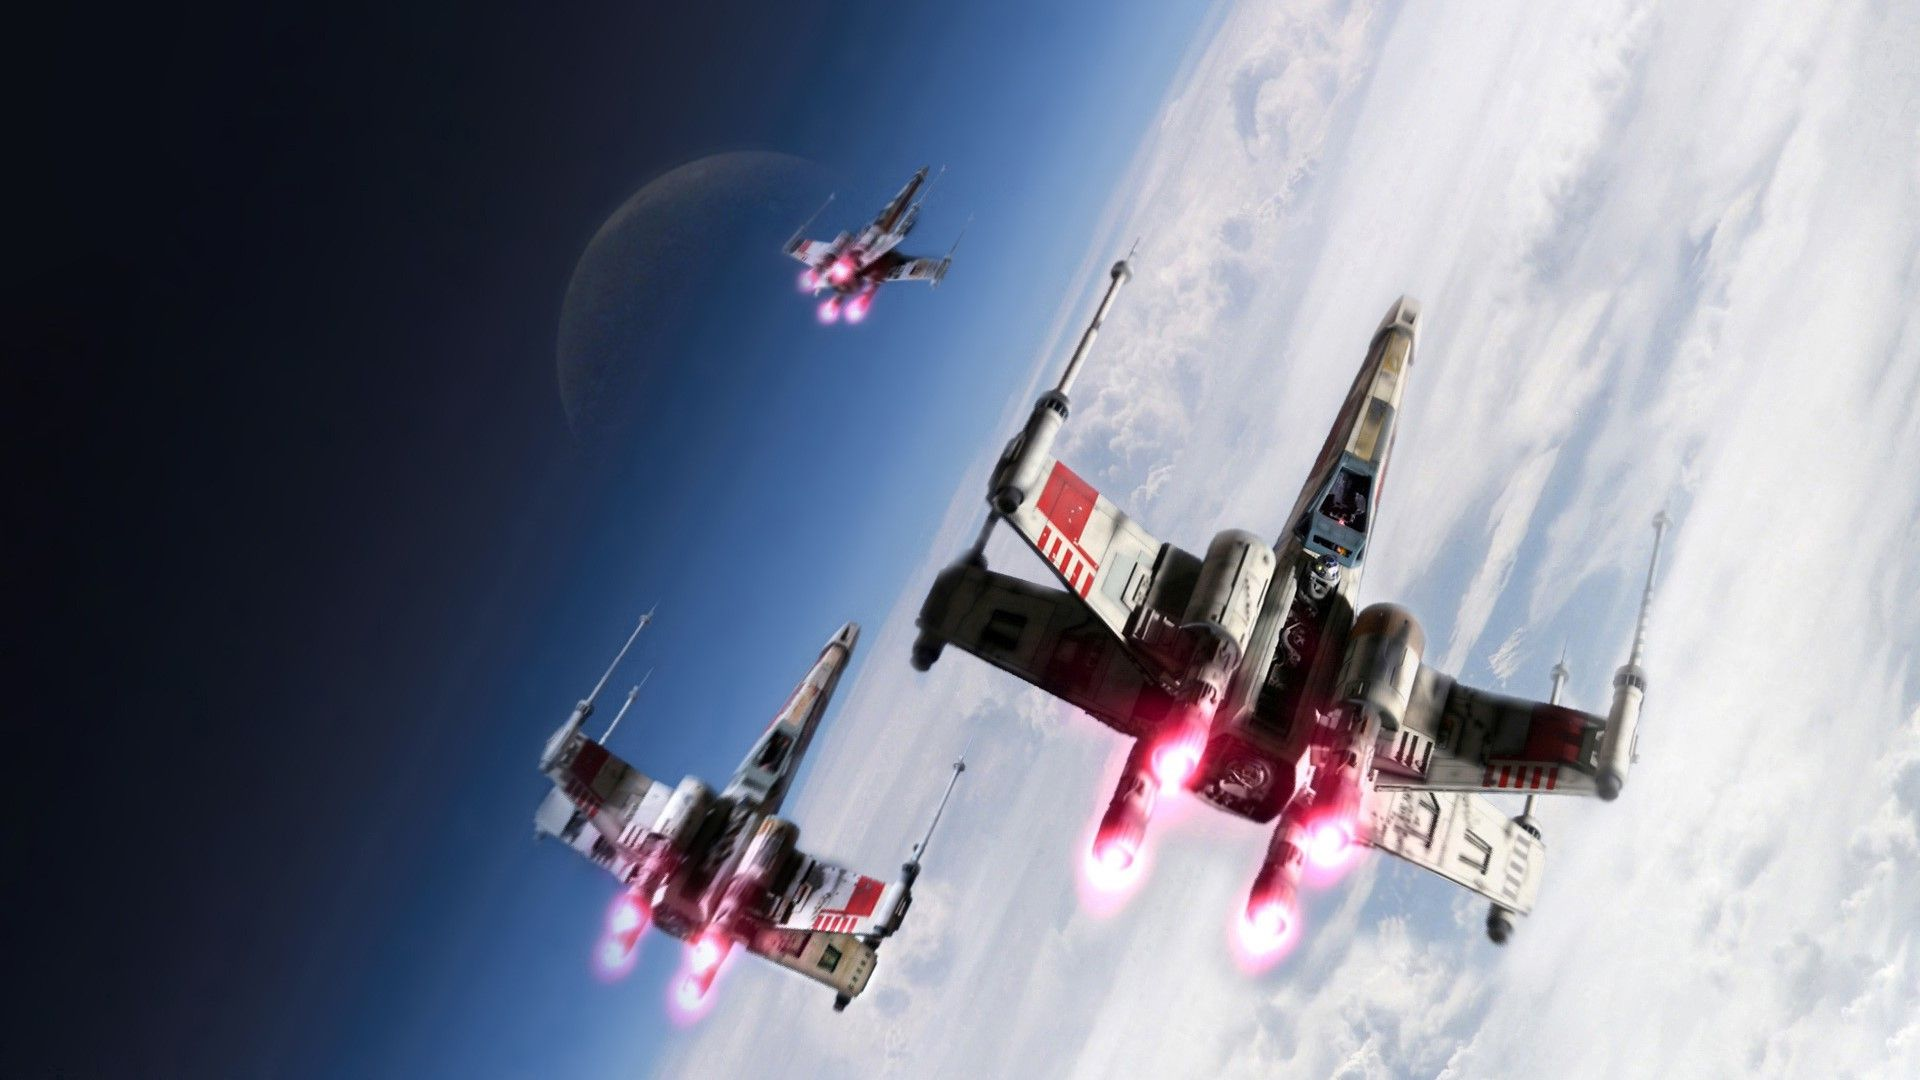 star wars force awakens xwing wallpaper by hd wallpapers daily 1920a—1080 x wing wallpaper